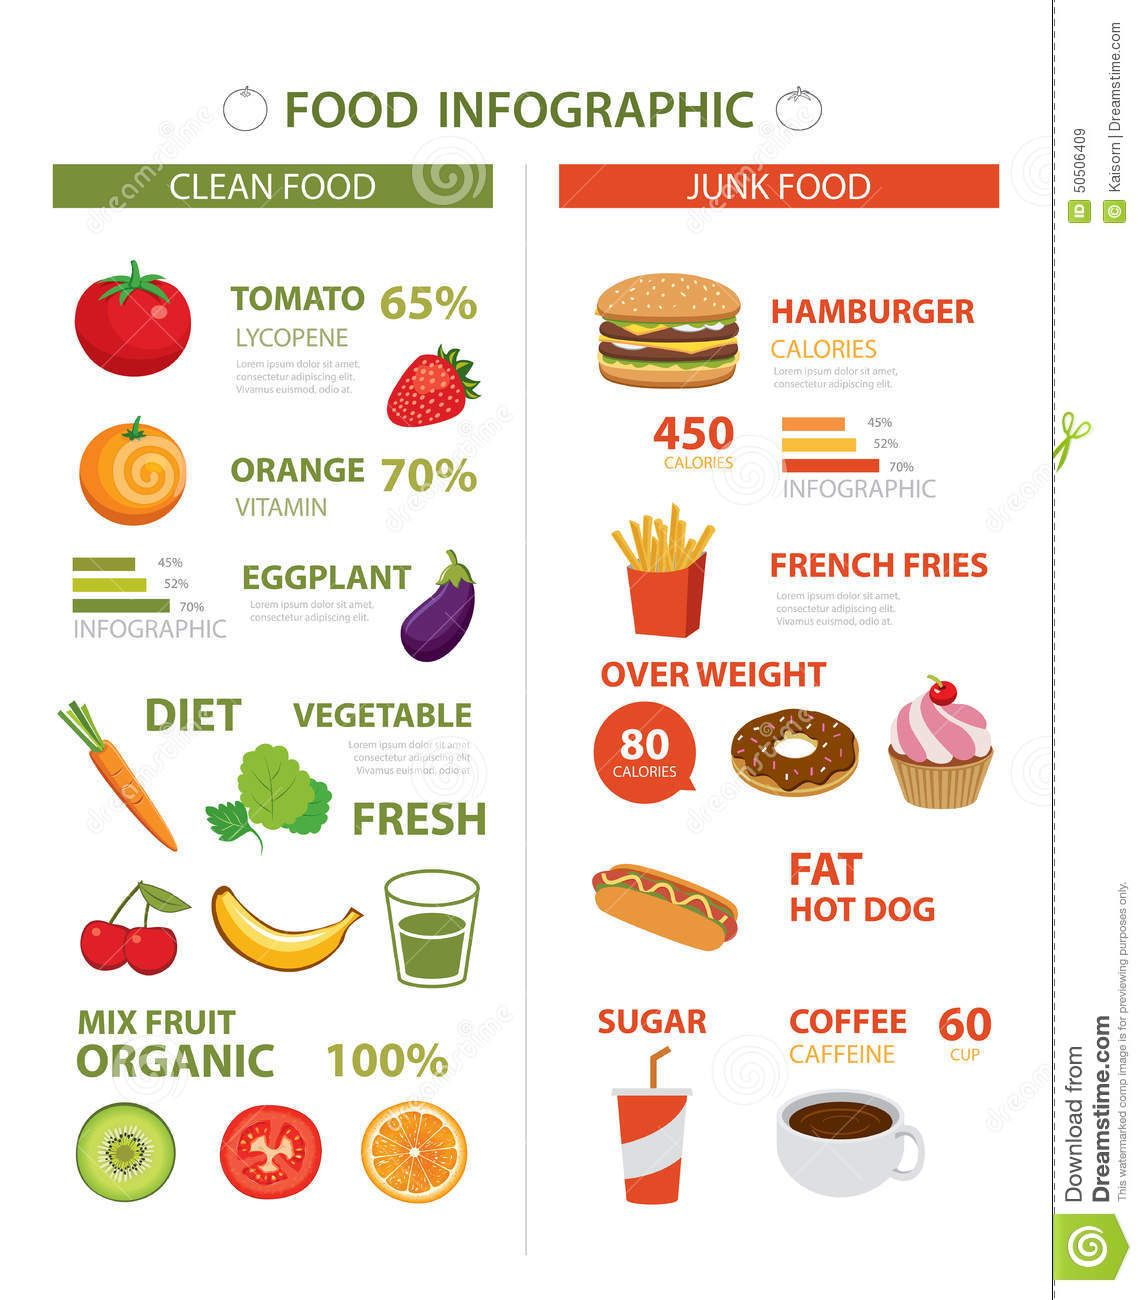 Healthy Junk Food Infographic Vector